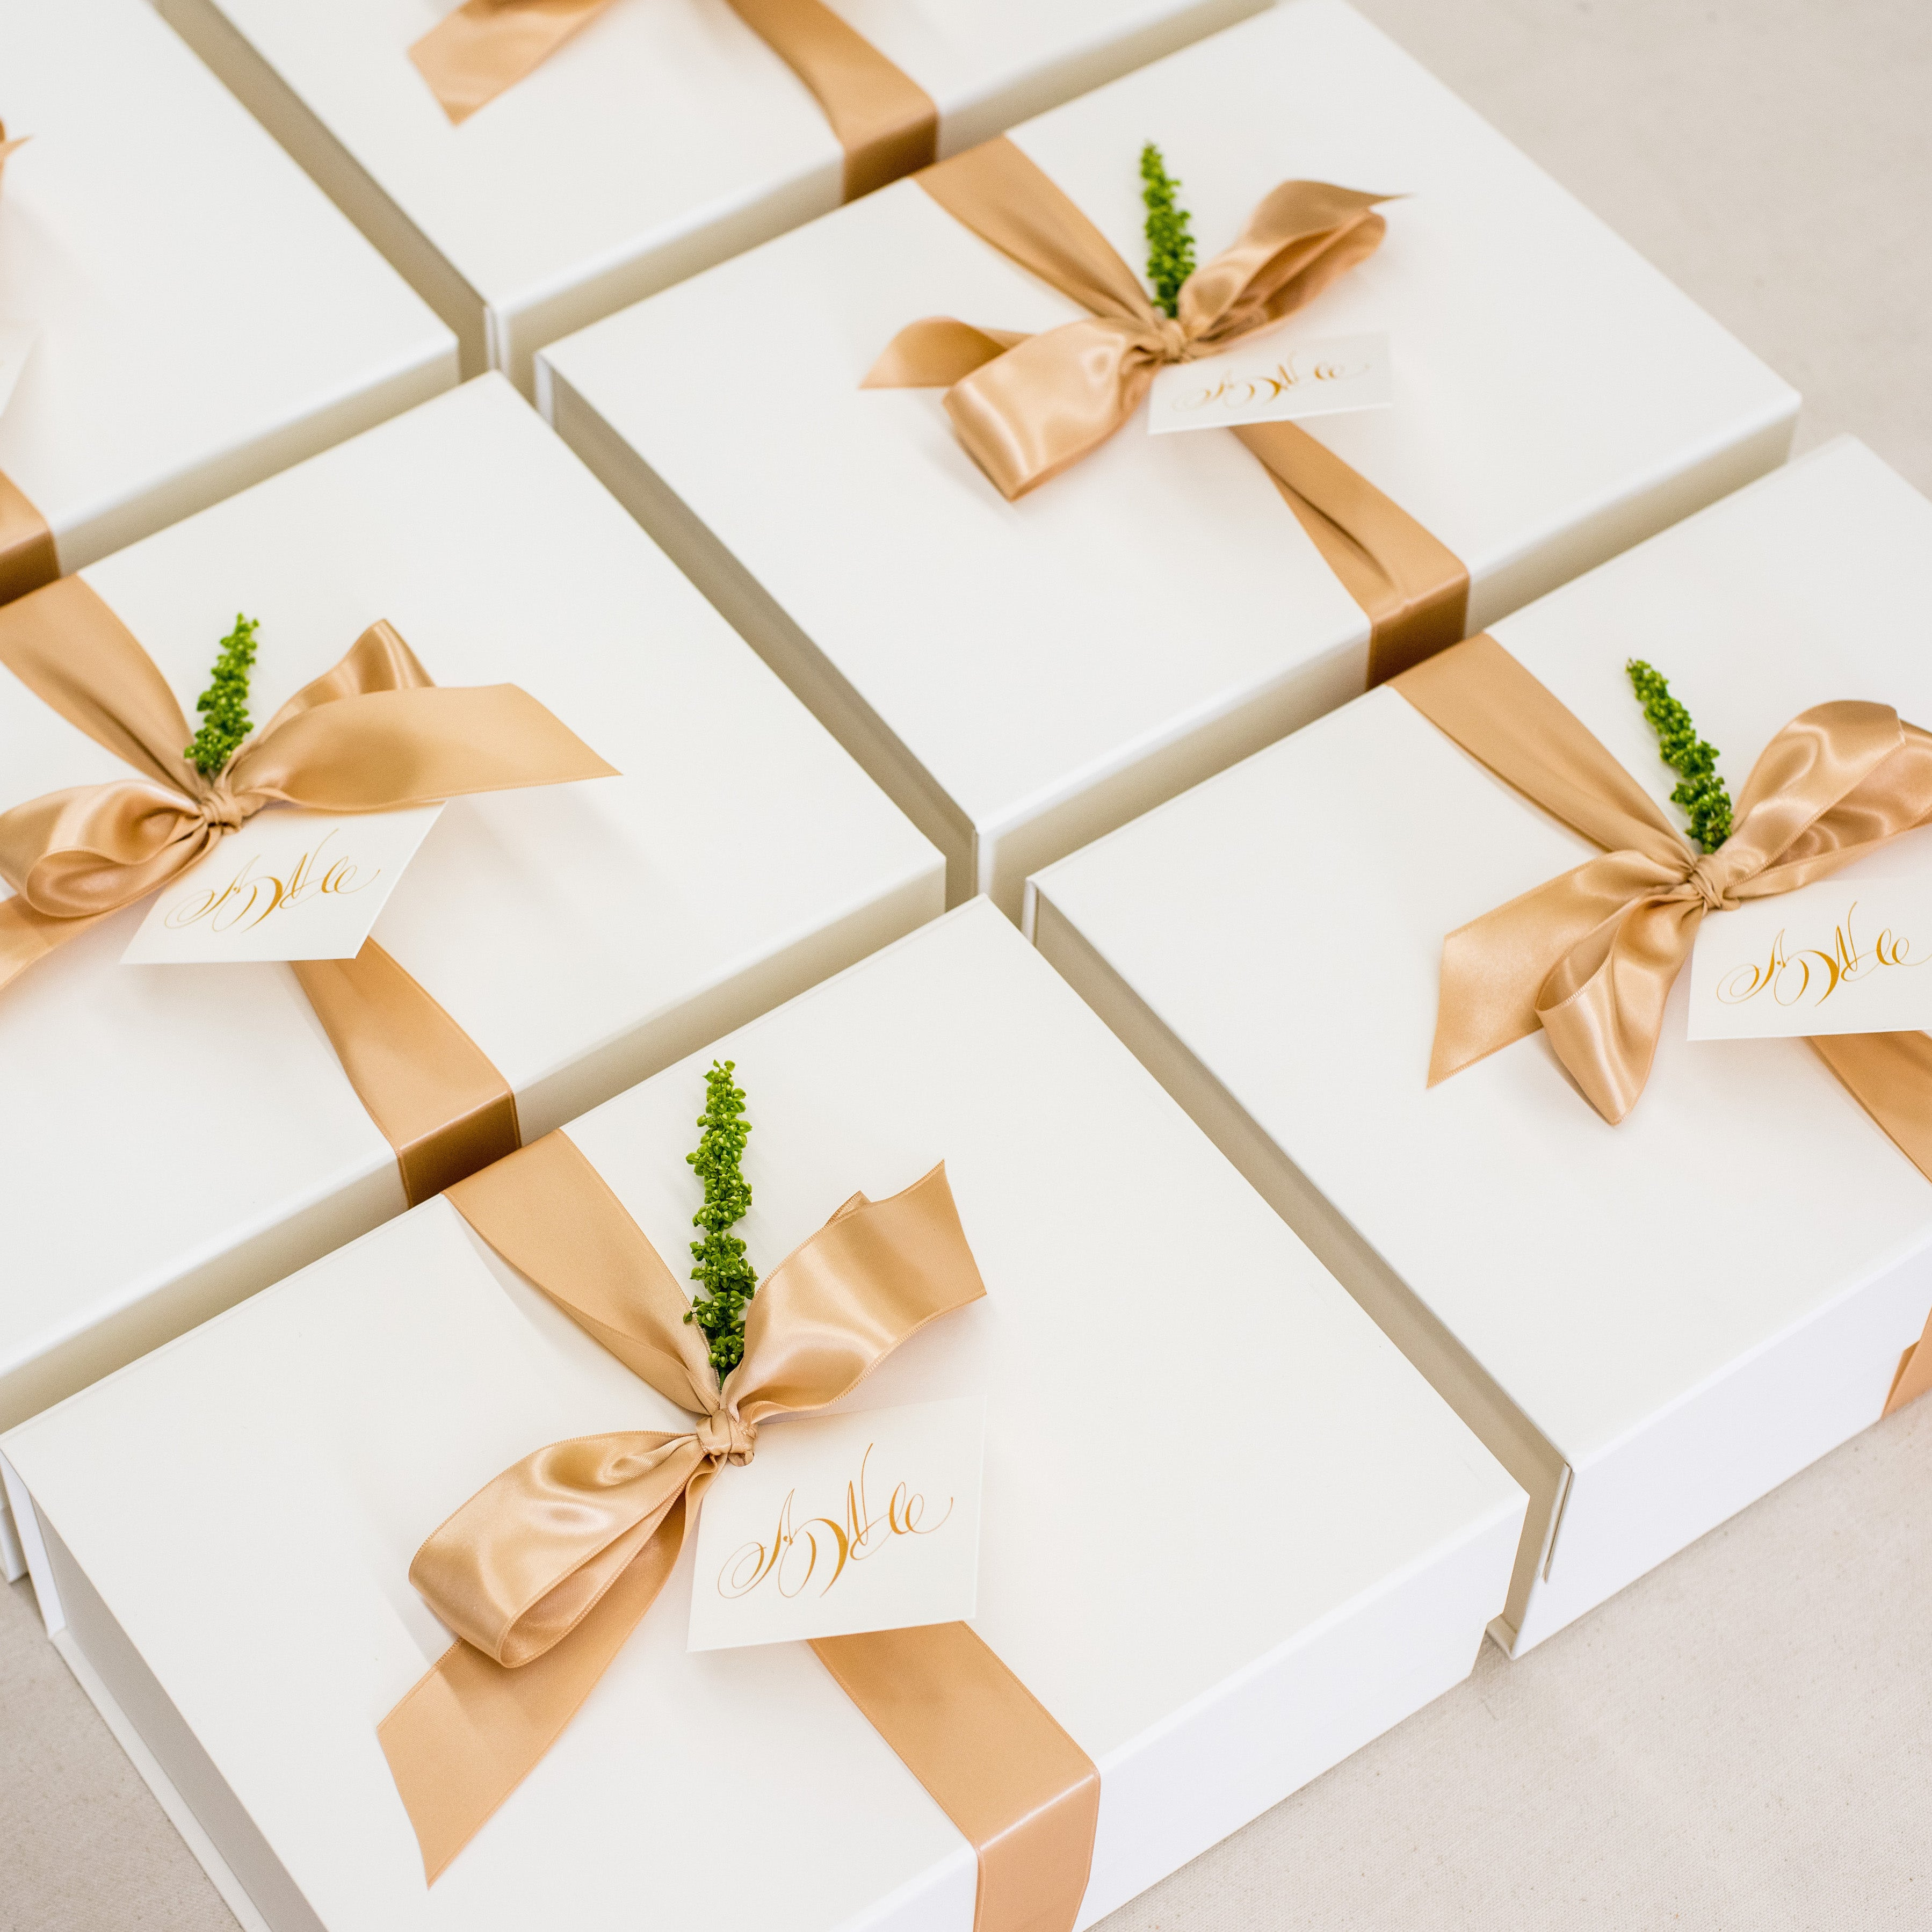 Wedding Gift Ideas For Guests: Wedding Gift Boxes For Guests